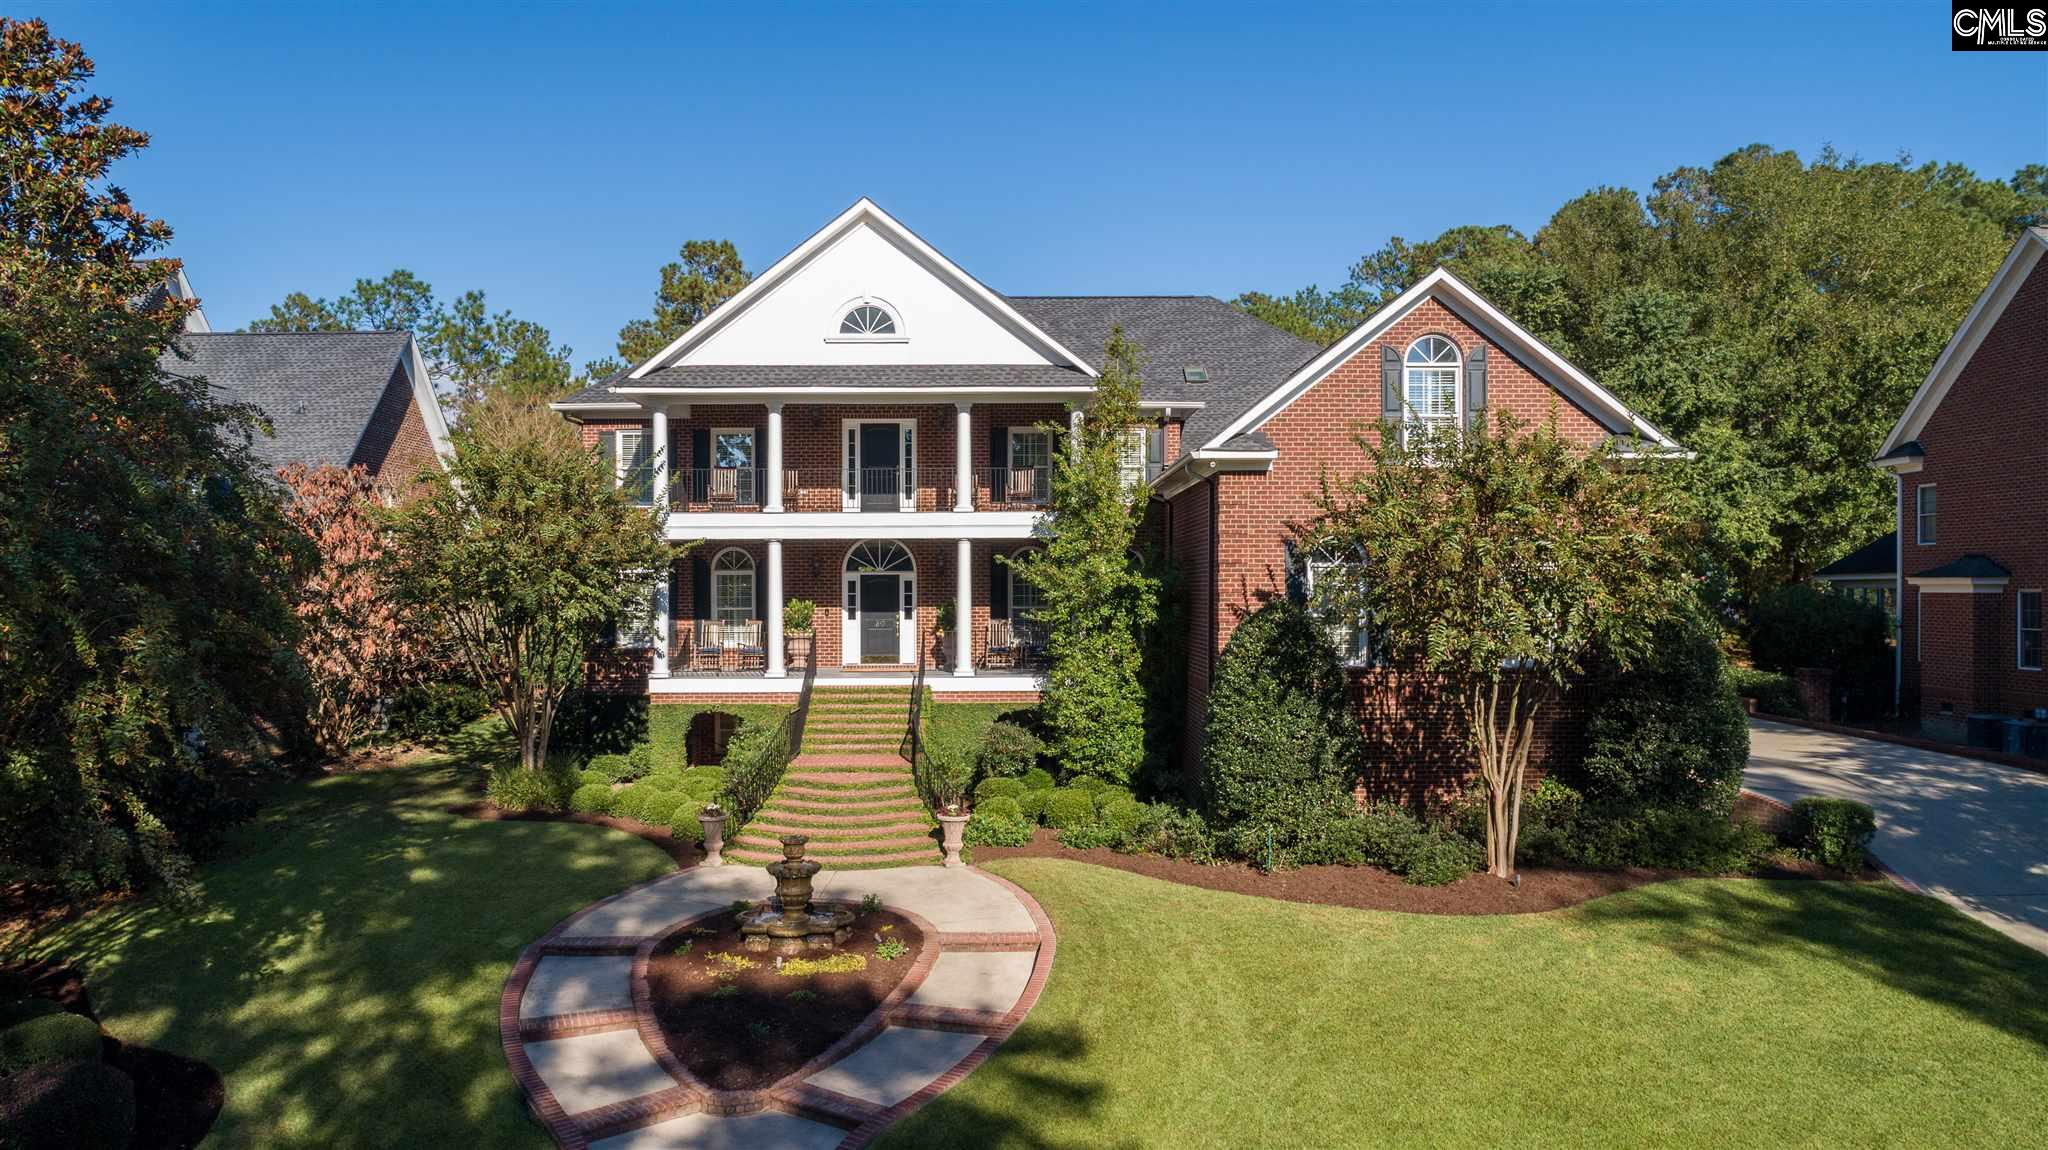 30 Foot Point Road Columbia, SC 29209-0847